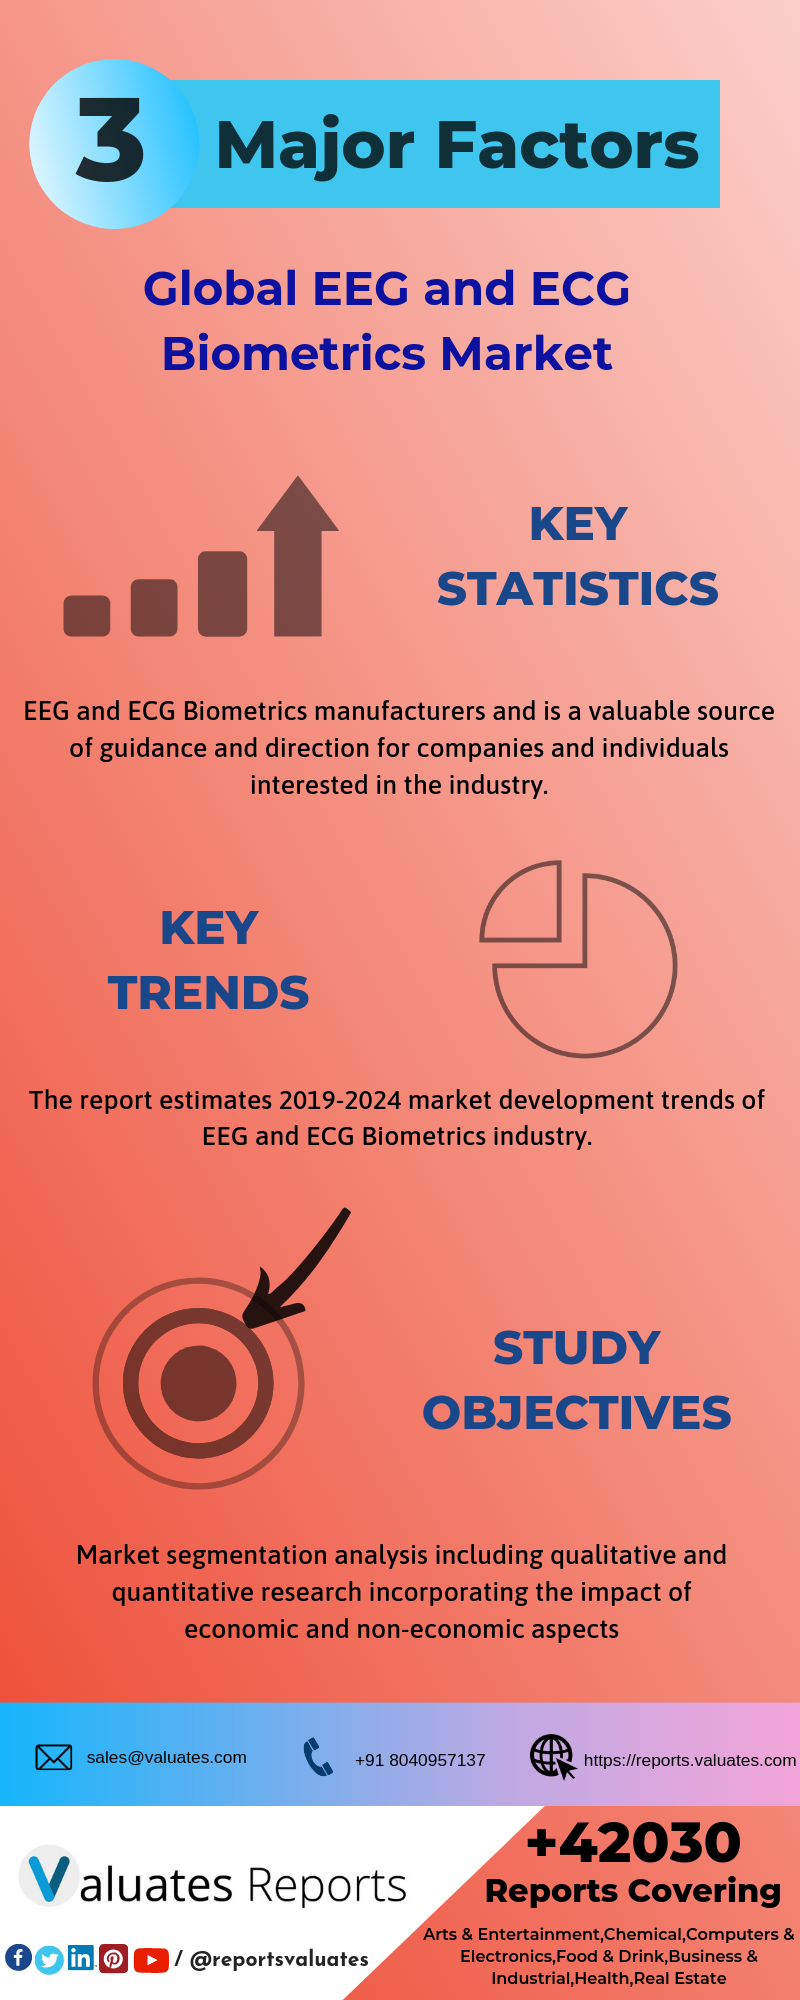 Global EEG and ECG Biometrics Market Report 2019 Market